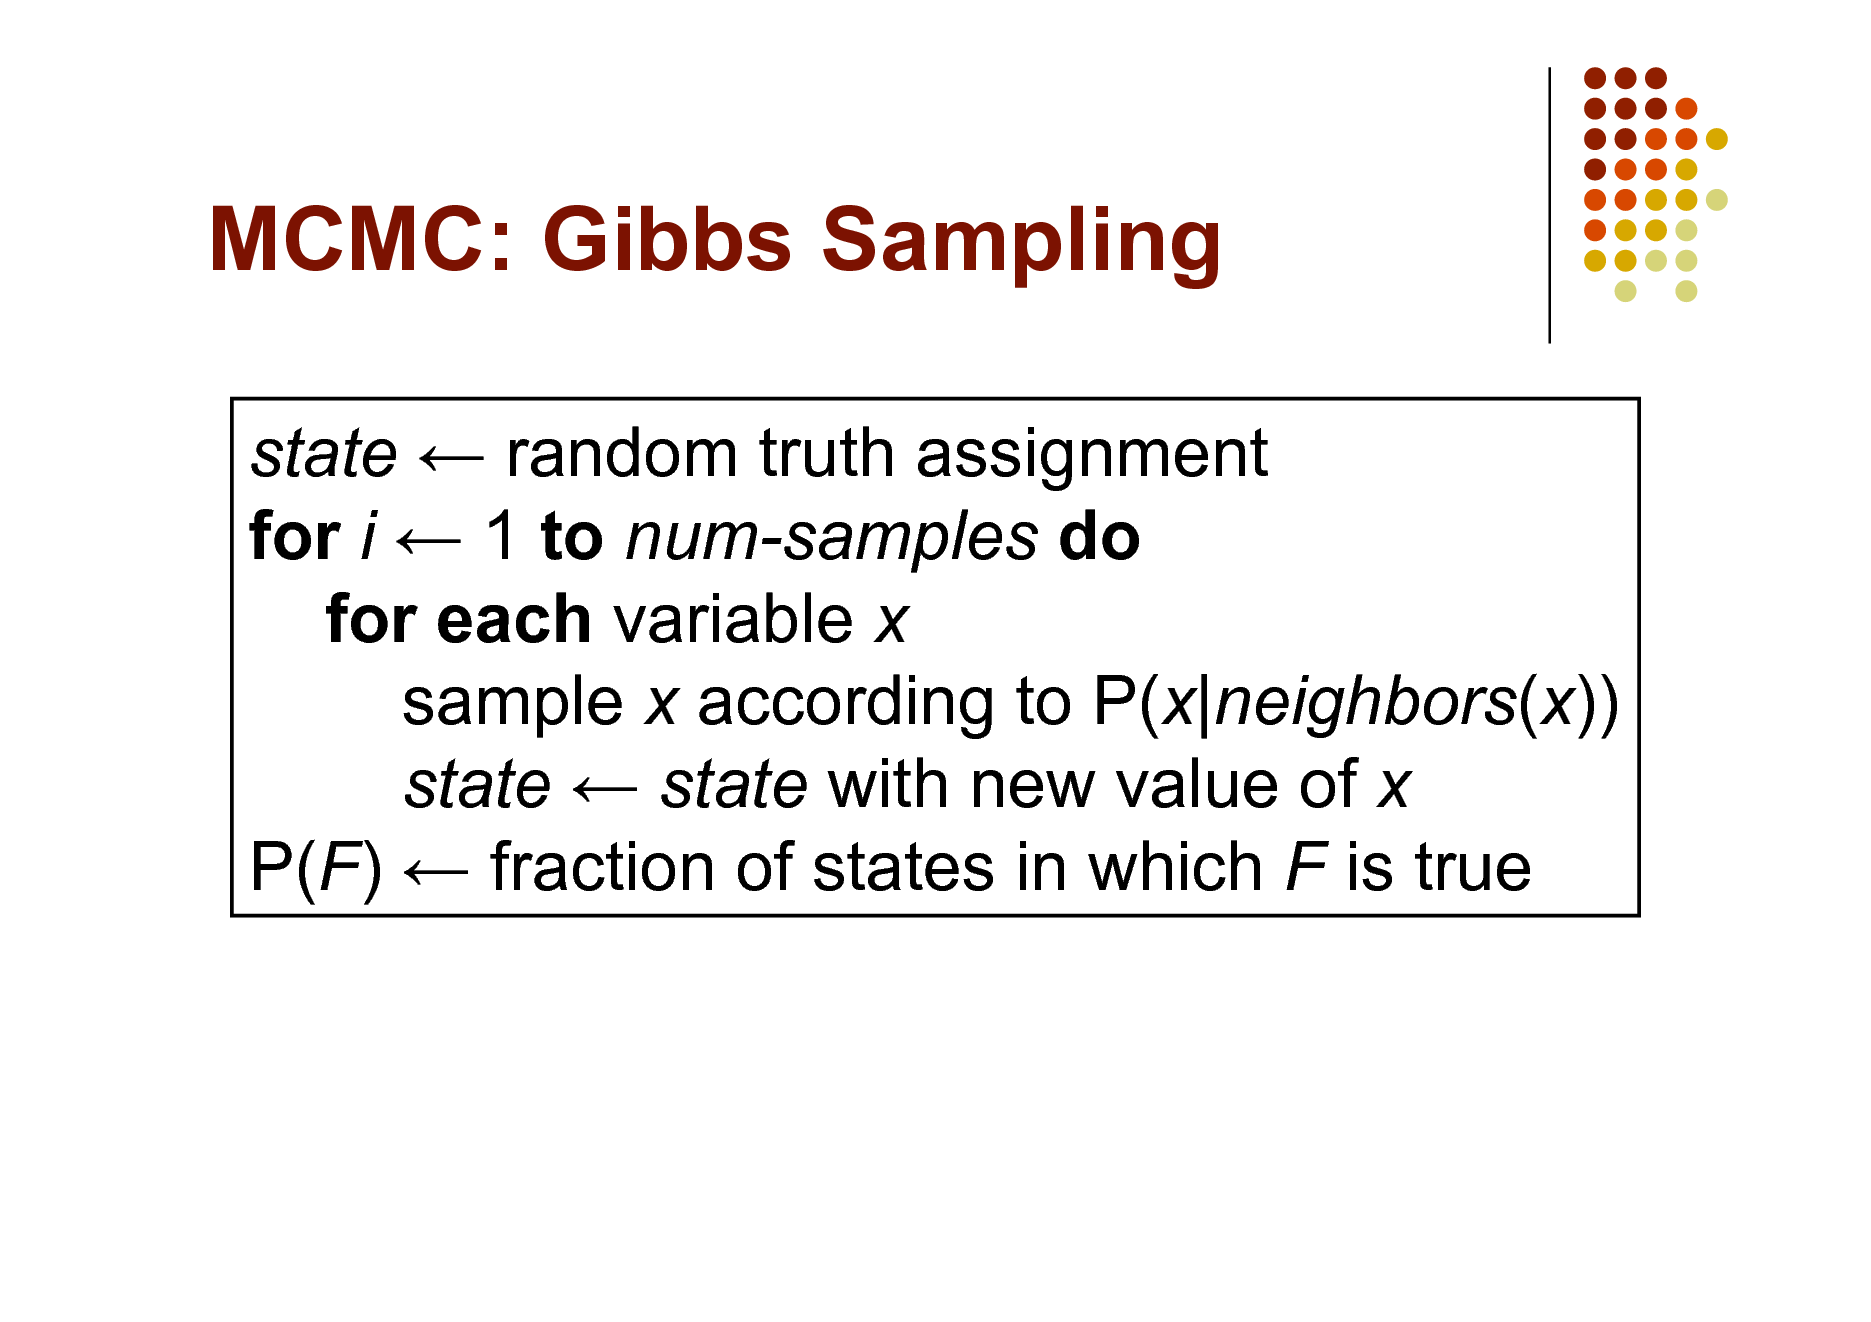 Slide: MCMC: Gibbs Sampling state  random truth assignment for i  1 to num-samples do for each variable x sample x according to P(x|neighbors(x)) state  state with new value of x P(F)  fraction of states in which F is true